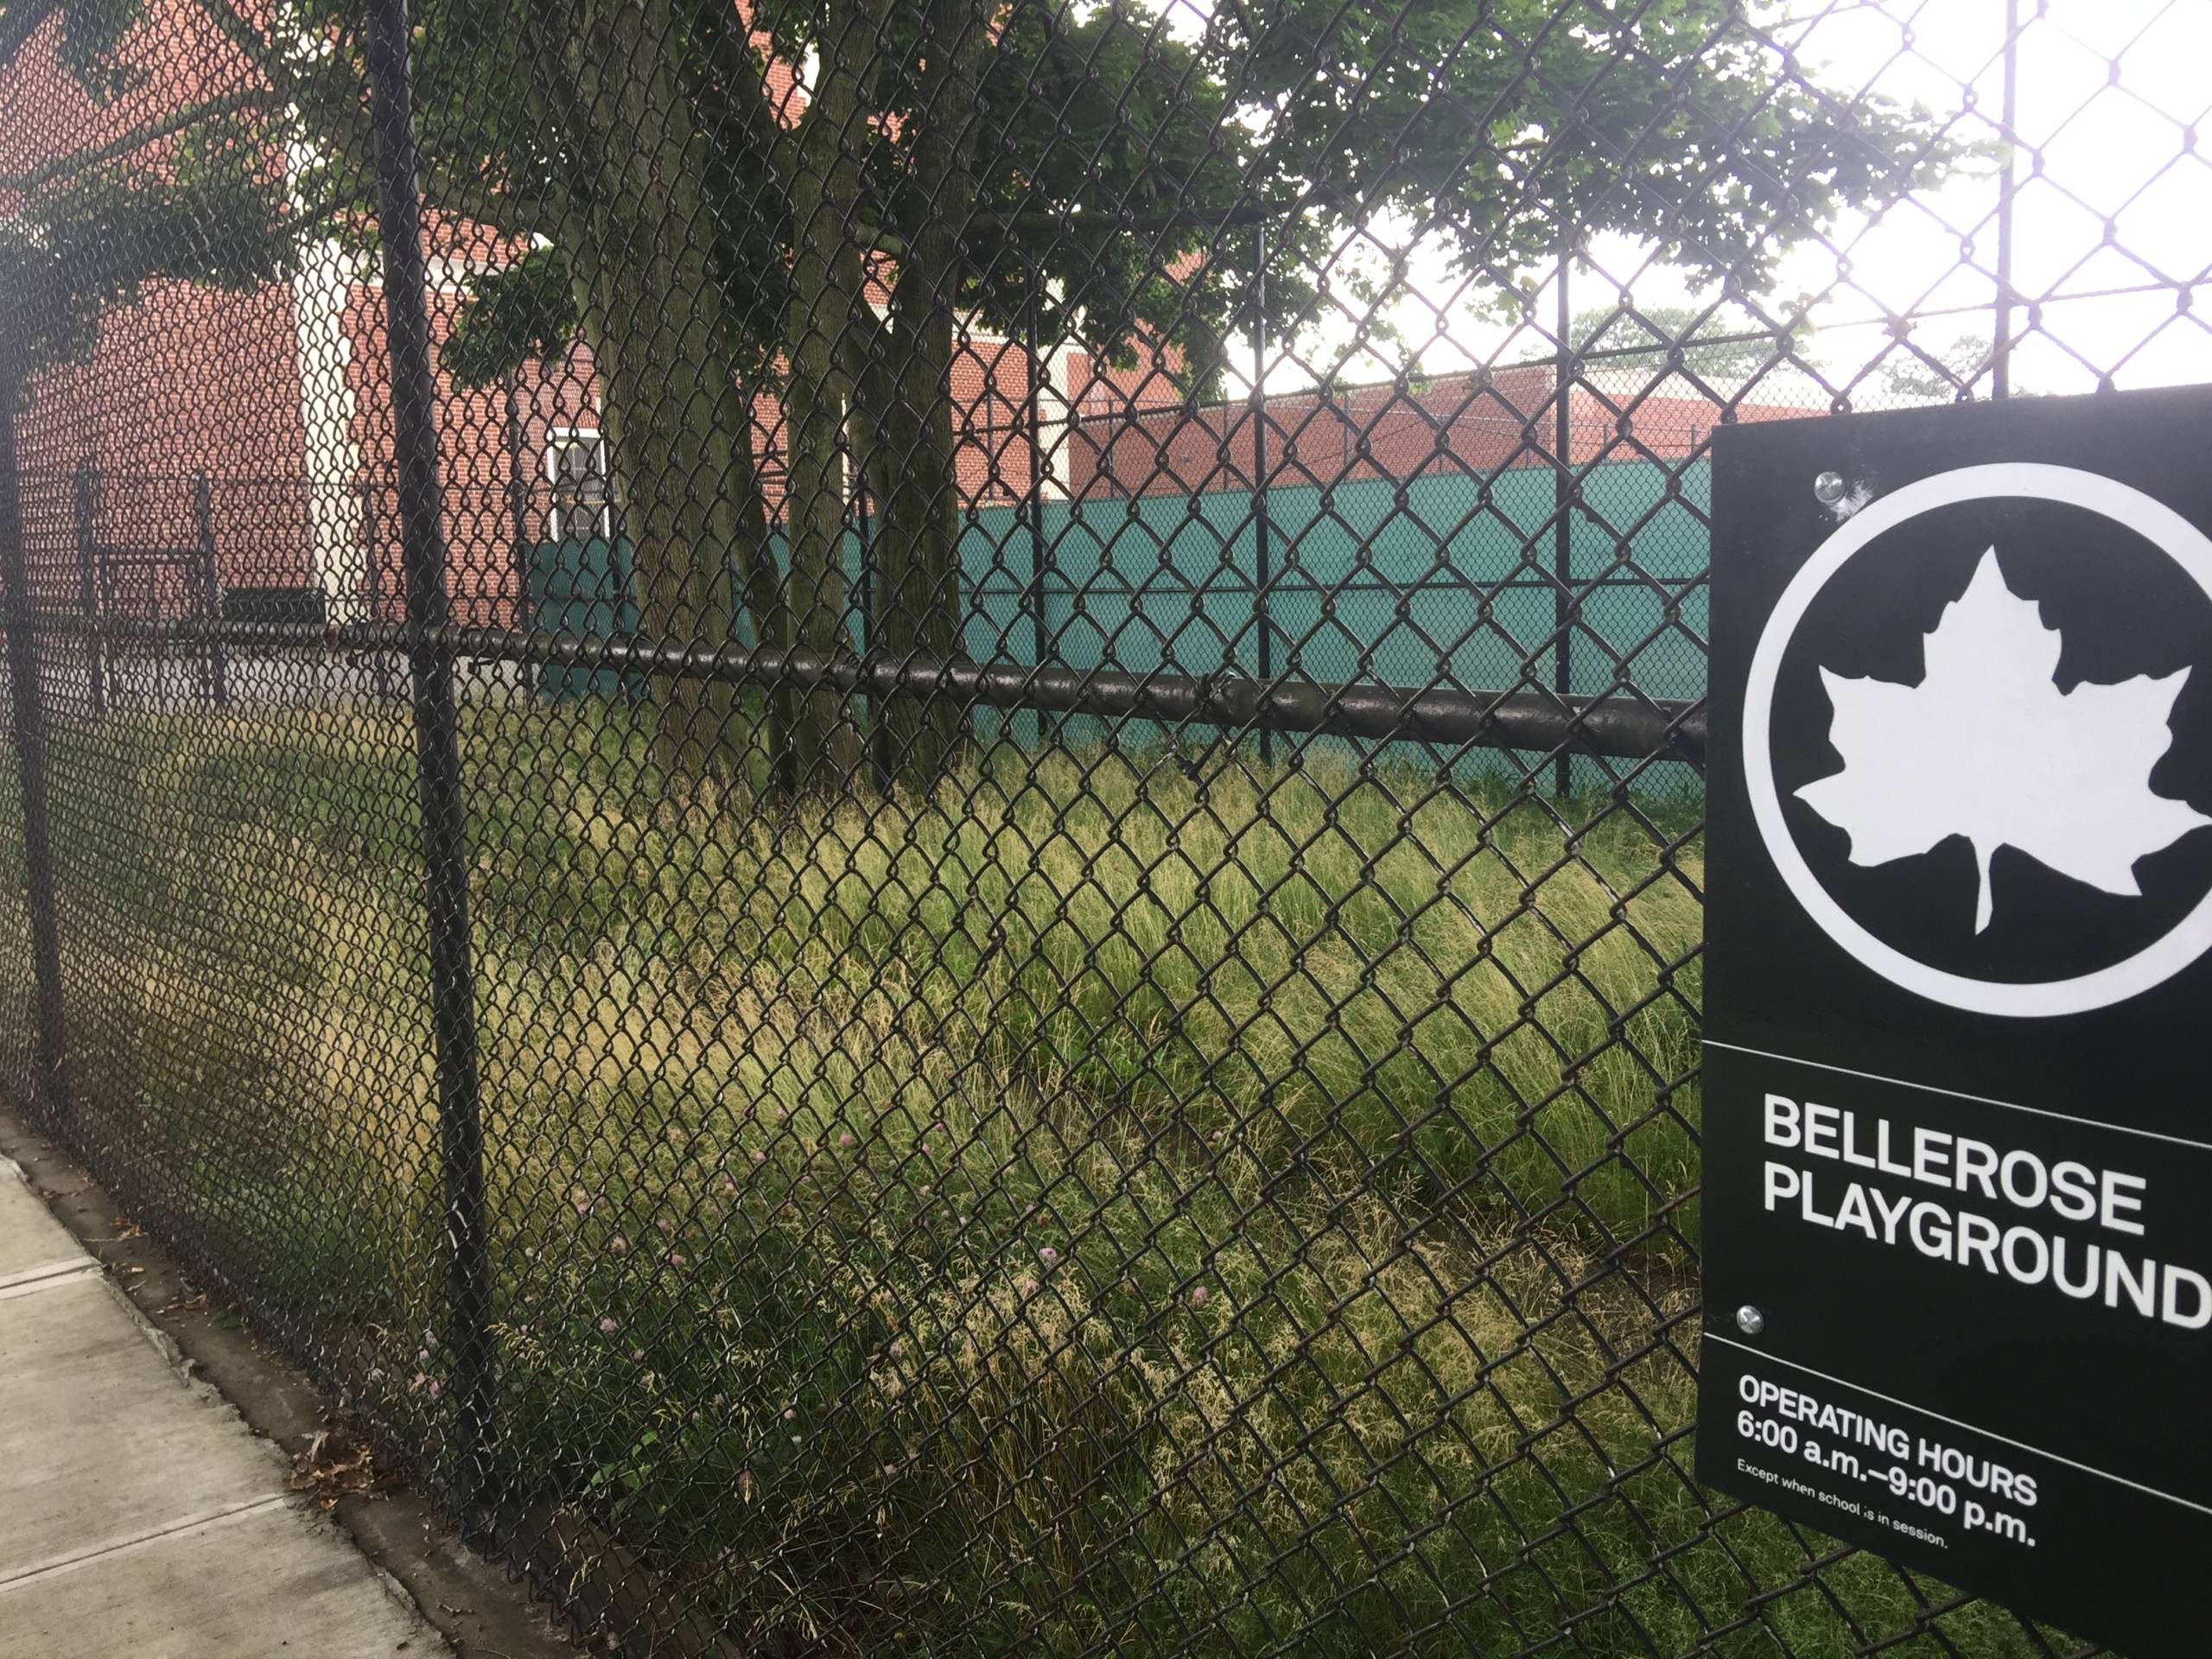 Site of Future Bellerose Reading Garden